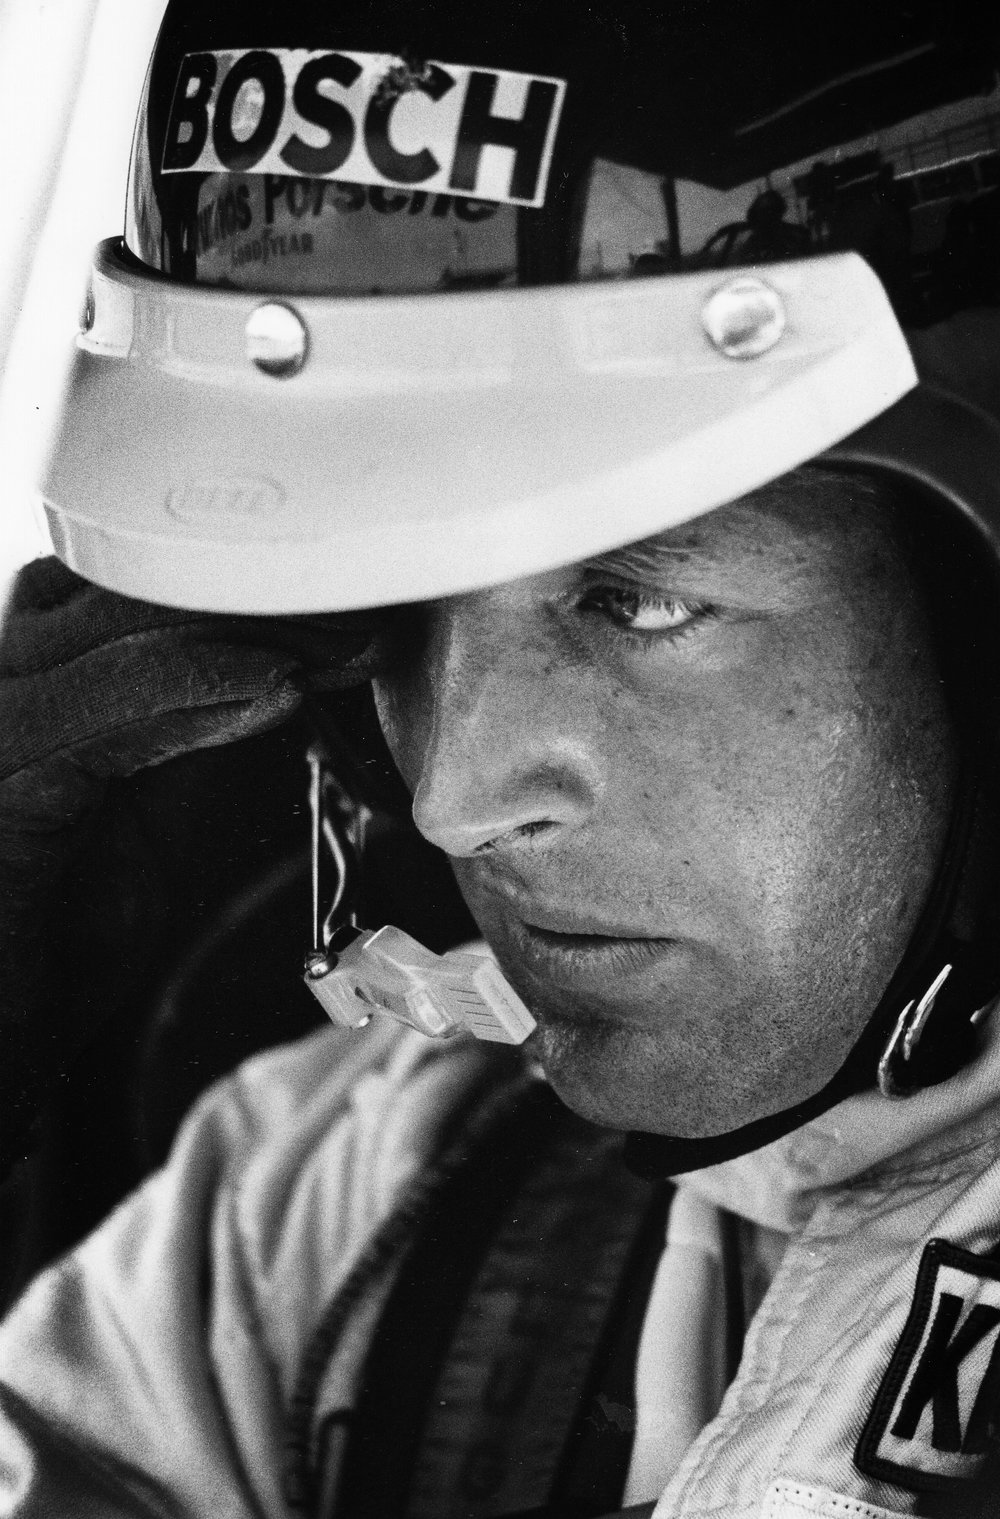 about hurley haywood - From his upbringing in Chicago and Wheaton, Illinois, to his chance meeting with Peter Gregg, Hurley Haywood was destined to drive anything he could get his hands on. Life-long relationships with the Porsche factory team and the Brumos dealership provided unimaginable opportunities for racing and career successes.With three overall victories at Le Mans, five at the Rolex 24 at Daytona, and two at the 12 Hours of Sebring, Haywood is the world's most successful endurance sports-car racer. In addition, Haywood raced in the International Race of Champions (IROC) four times, the Indianapolis 500, won championships in both IMSA and SCCA, and won dozens of other races during a career spanning more than 43 years.In addition, he has been head instructor at both the Brumos Driving Experience and the Porsche Driving School, bringing him in contact with countless up-and-coming racers and passionate Porsche enthusiasts.- from